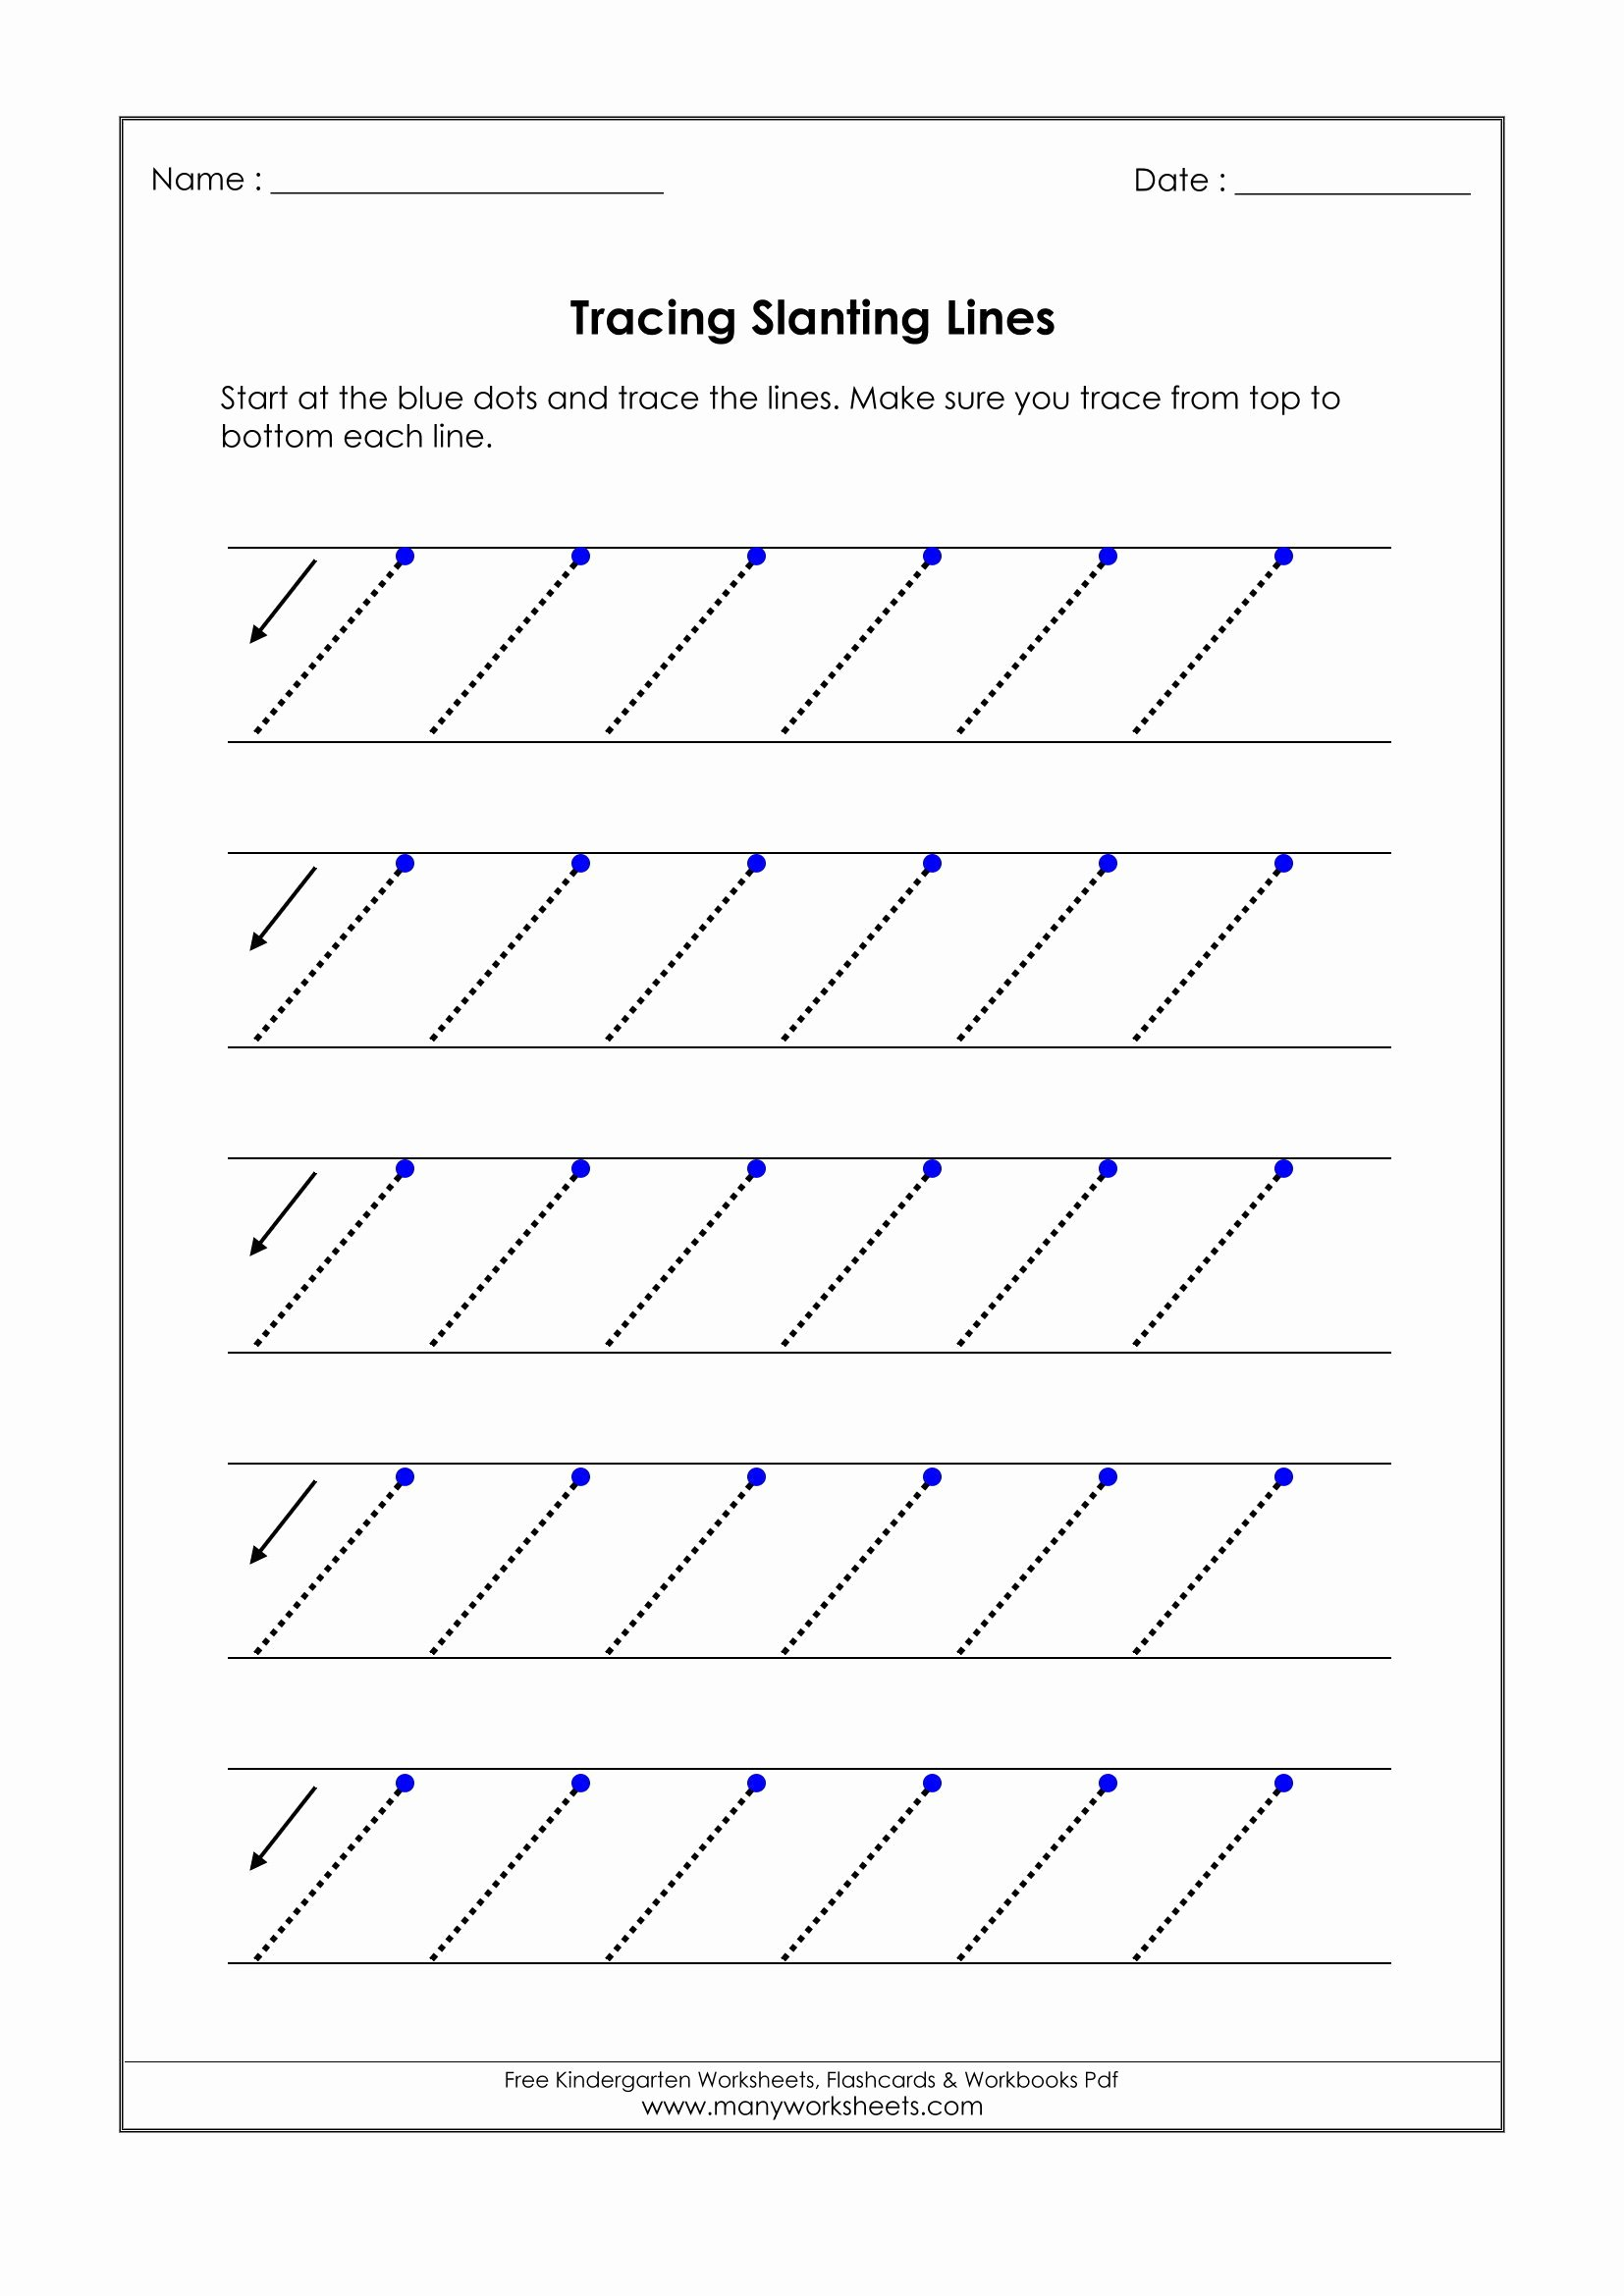 Slanting Lines Worksheets for Preschoolers Best Of No Worksheet Tracing Slanting Lines